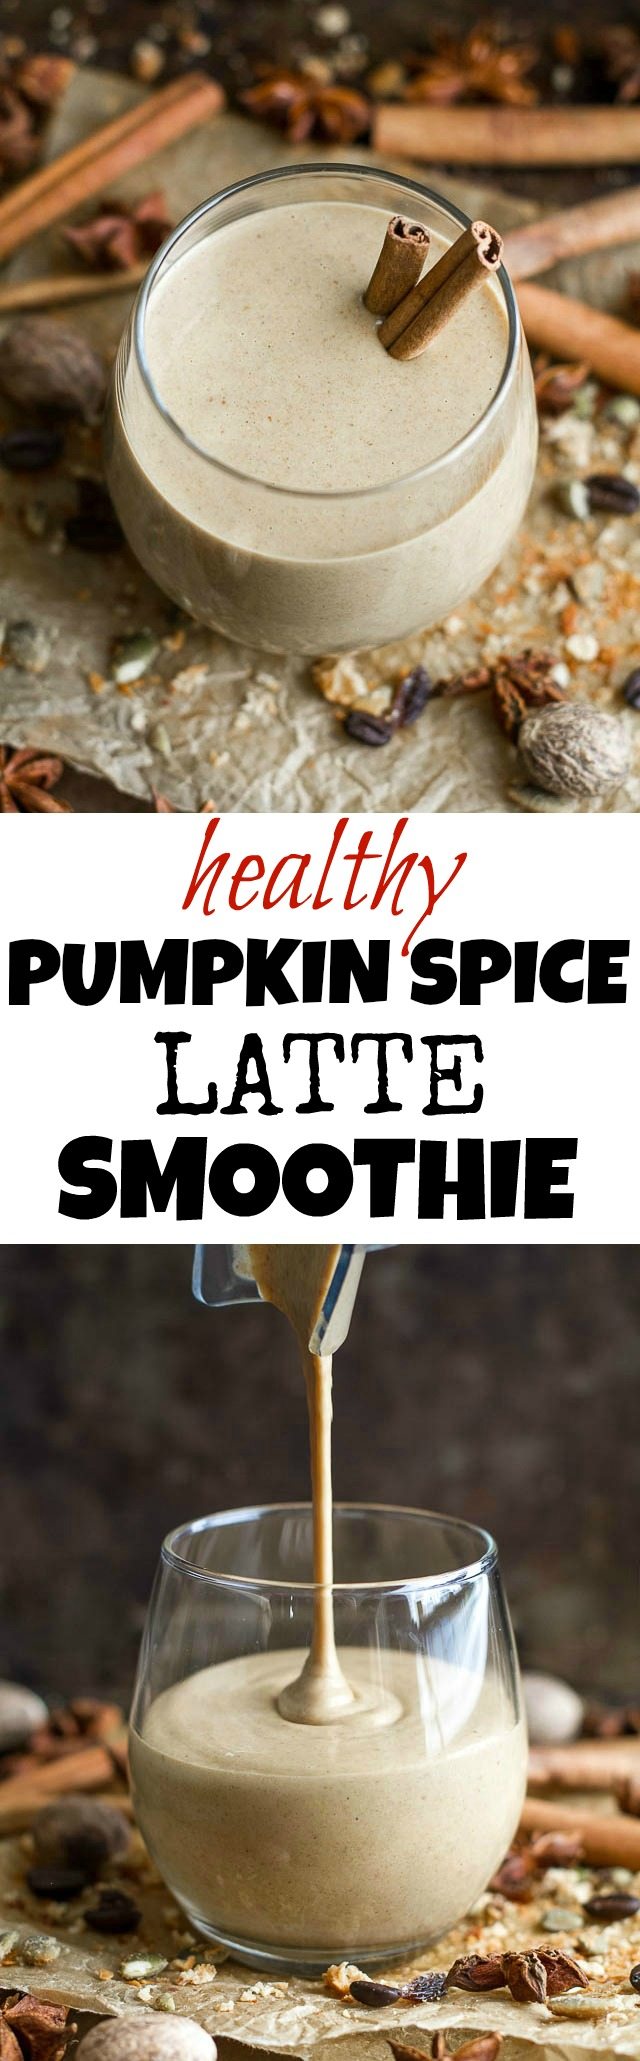 This healthy Pumpkin Spice Latte Breakfast Smoothie can be enjoyed hot ...